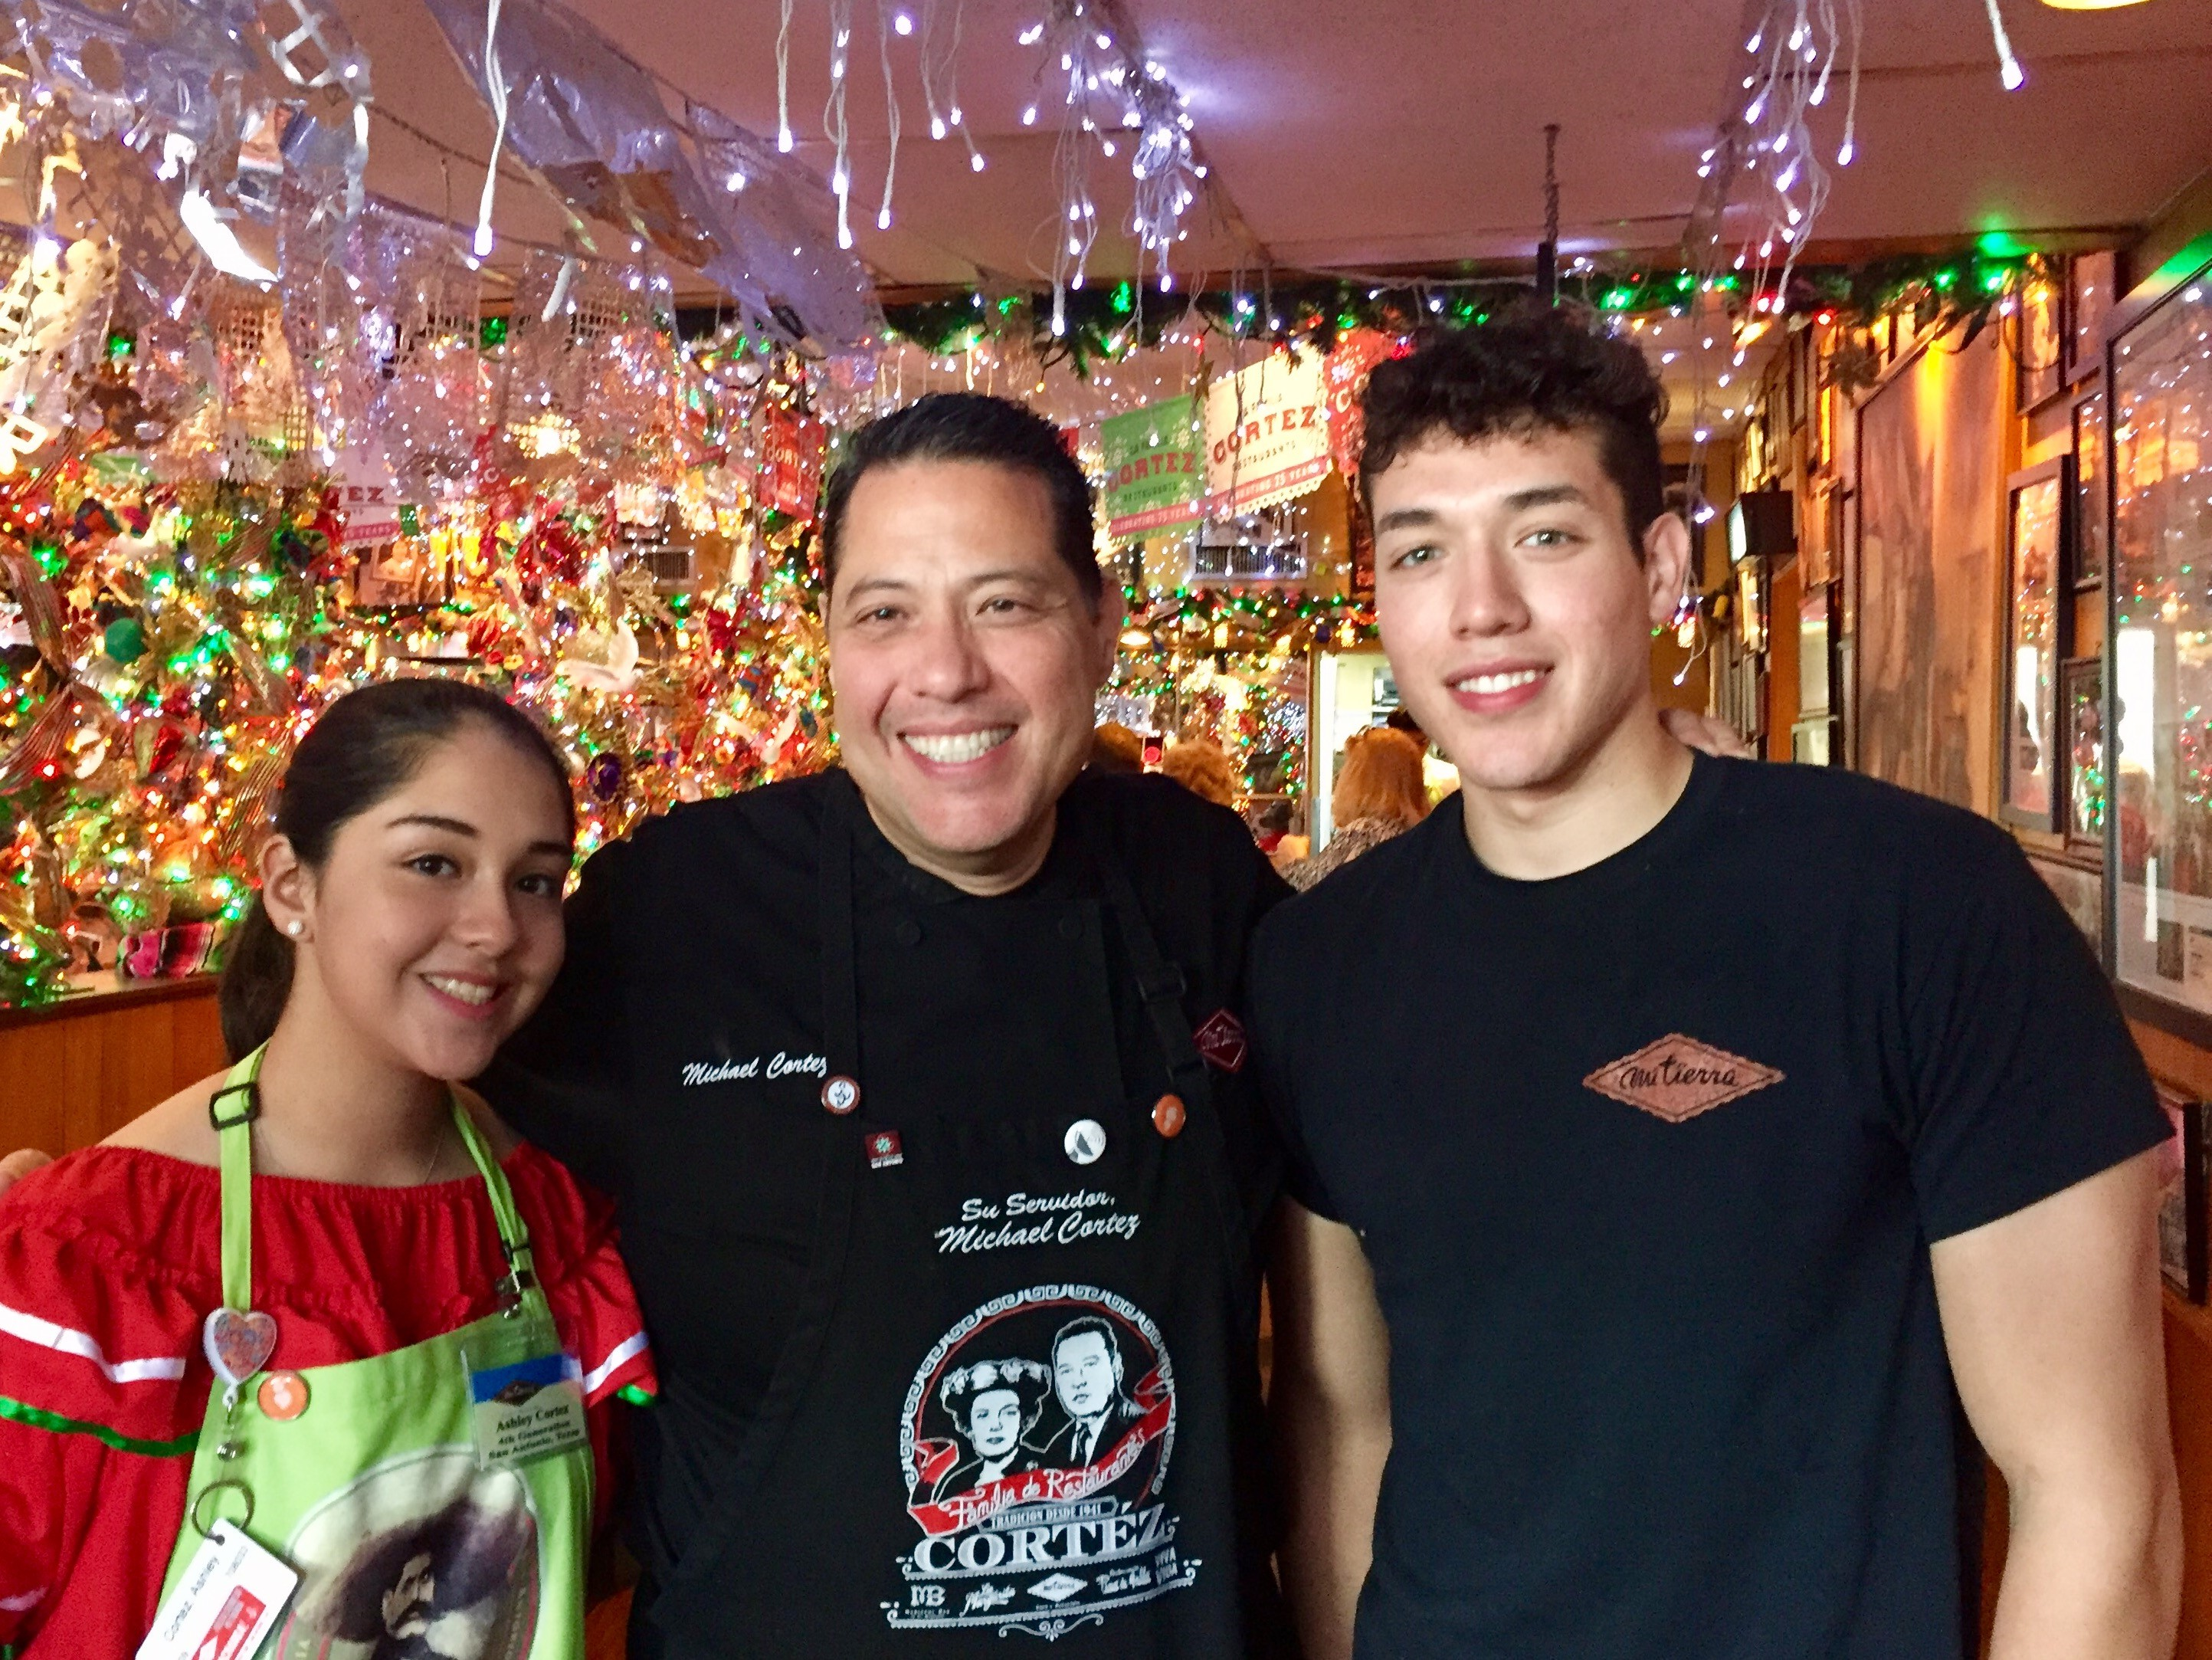 Michael Cortez, center, with daughter Ashley and son Elijah.